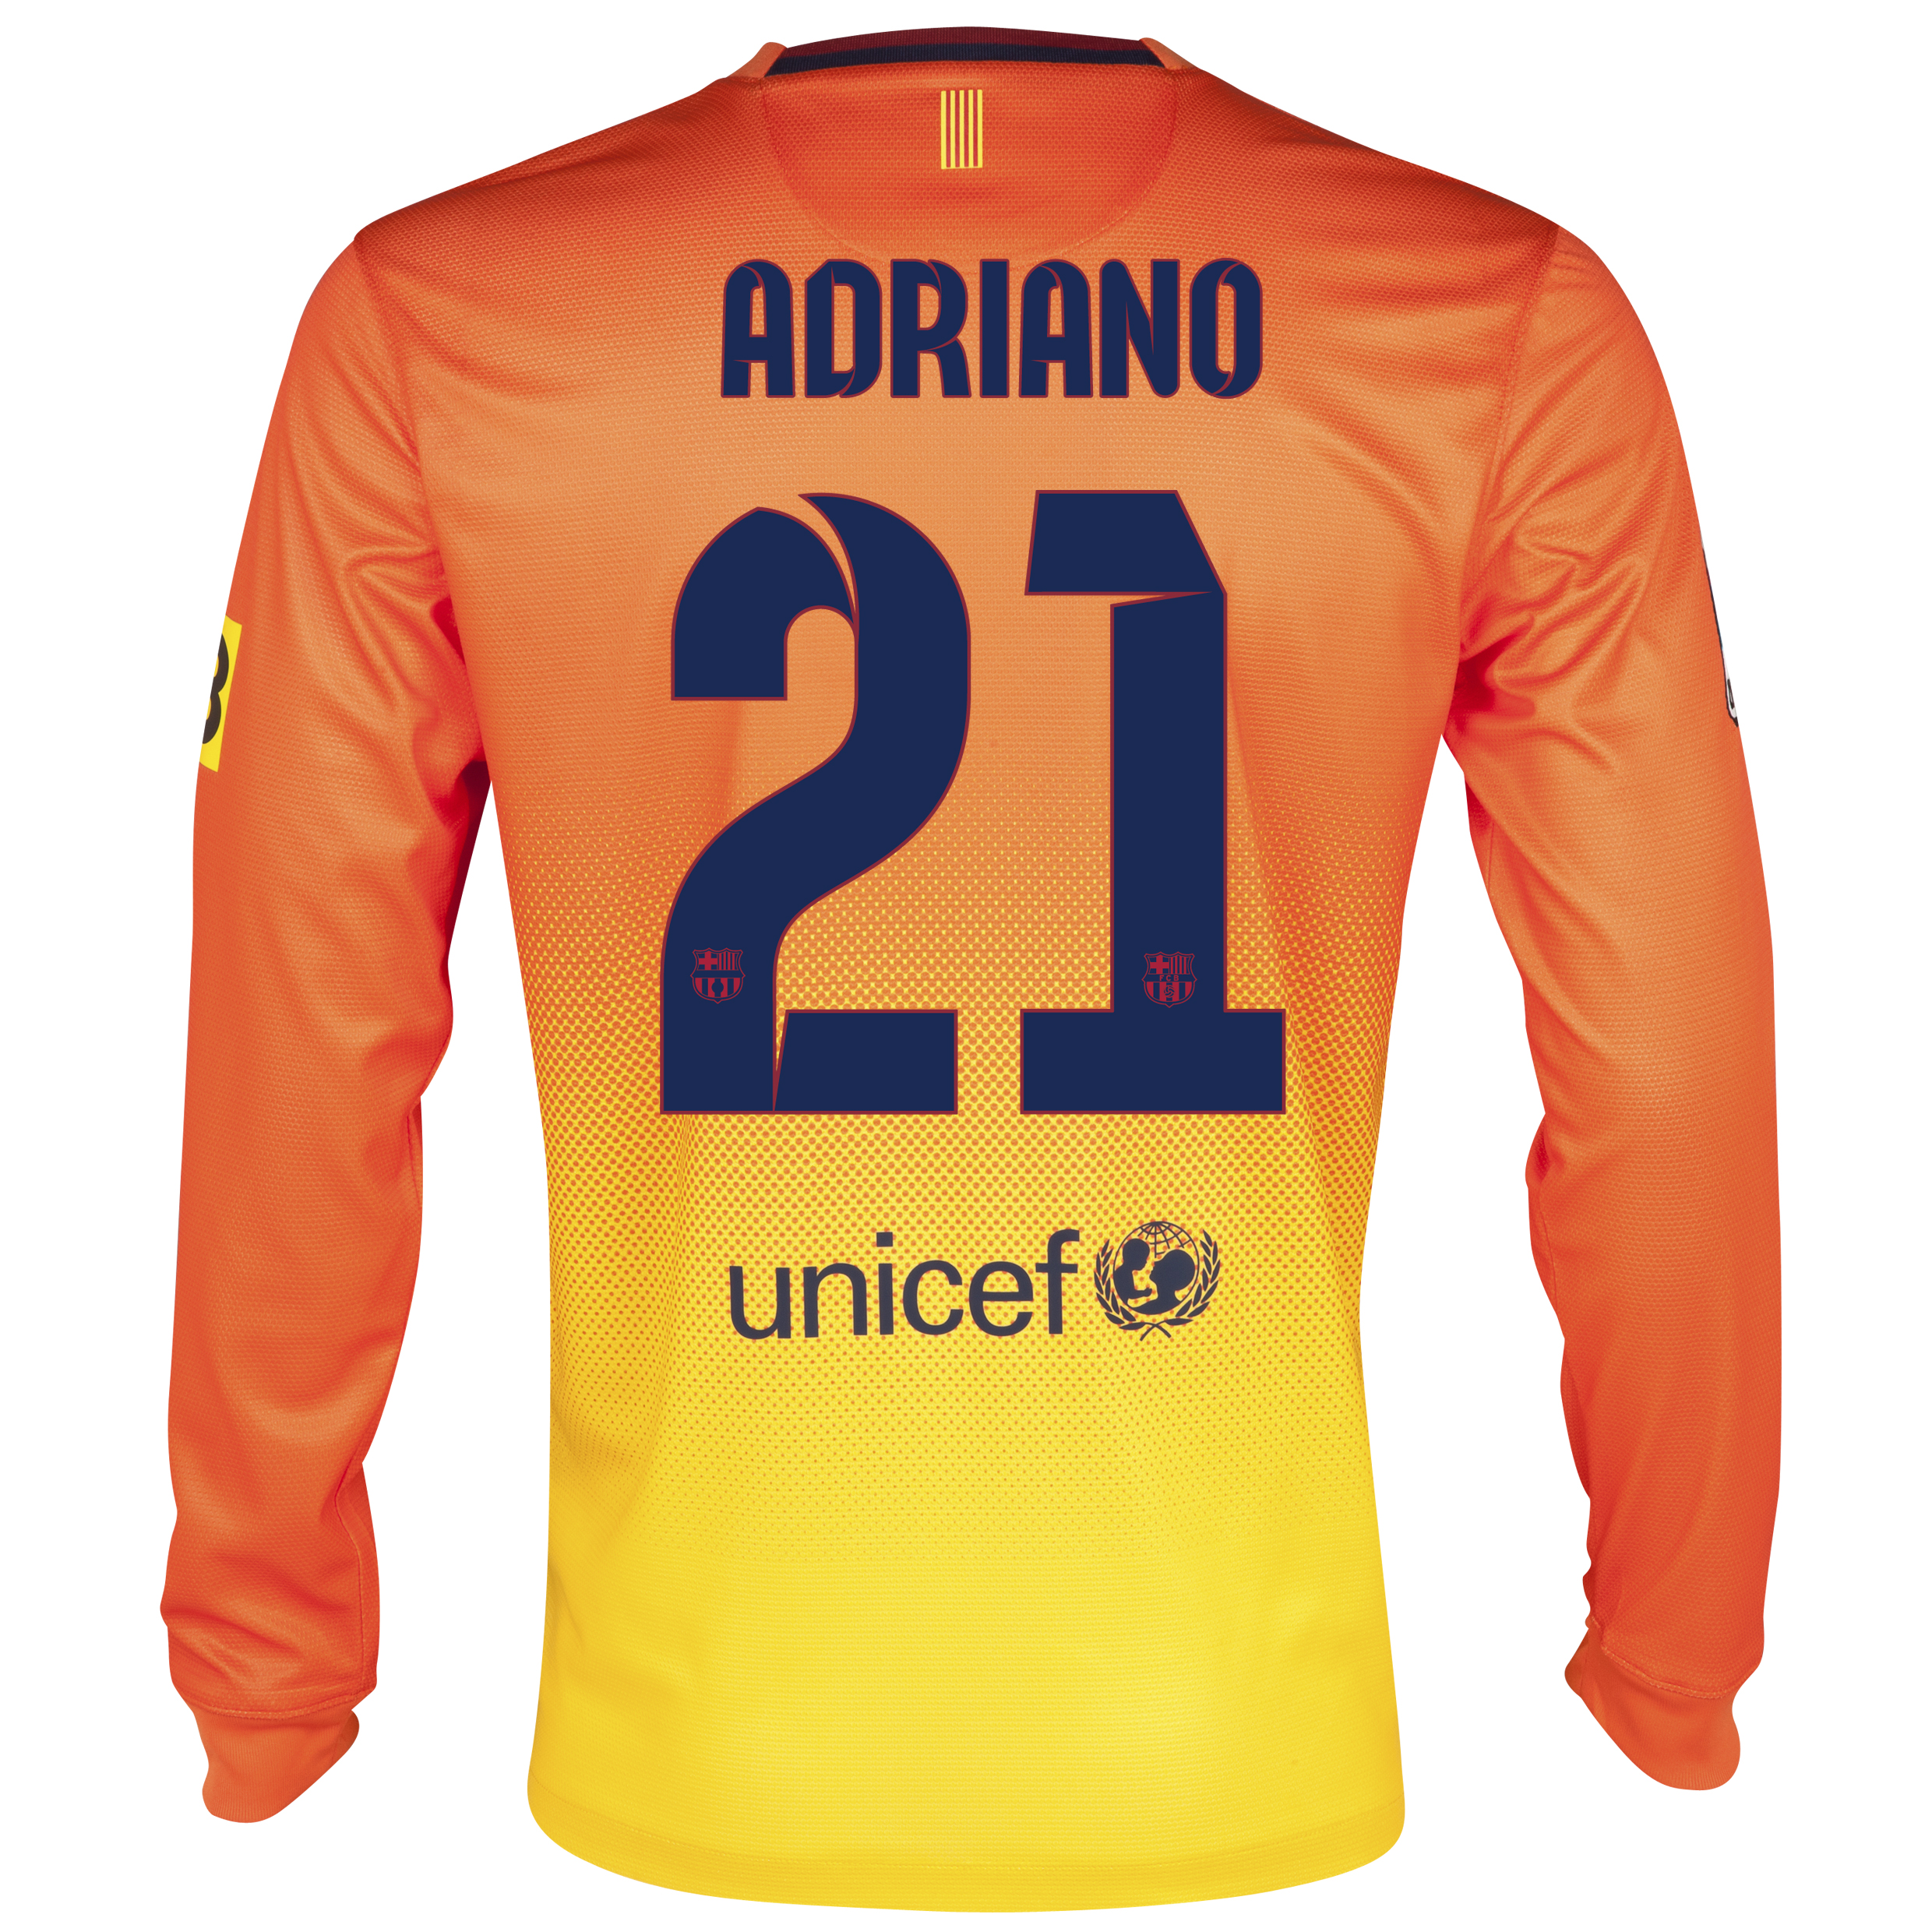 Barcelona Away Shirt 2012/13 - Long Sleeved with Adriano 21 printing